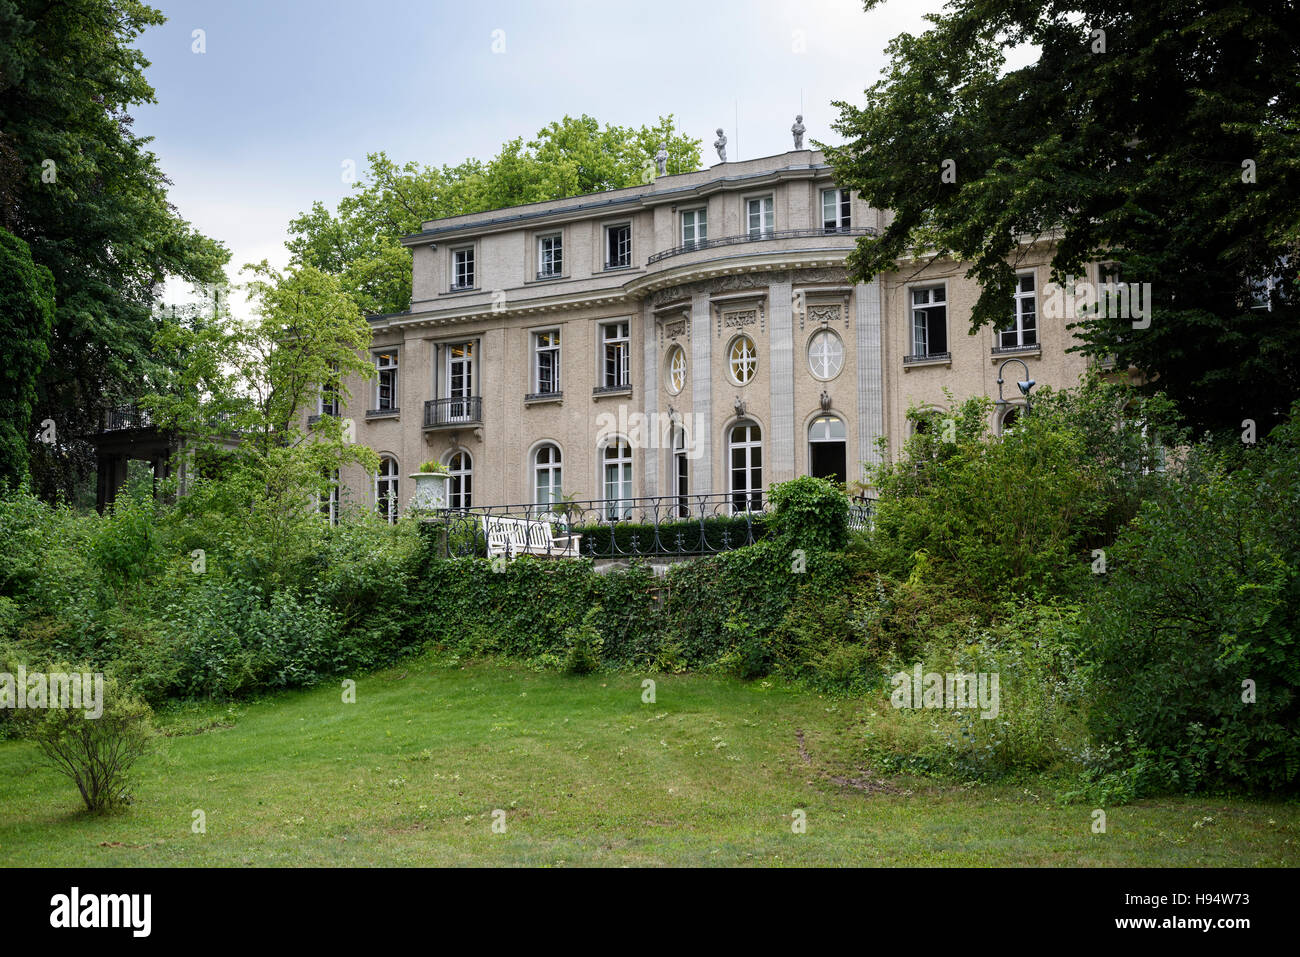 Berlin germany house of the wannsee conference memorial and educational site